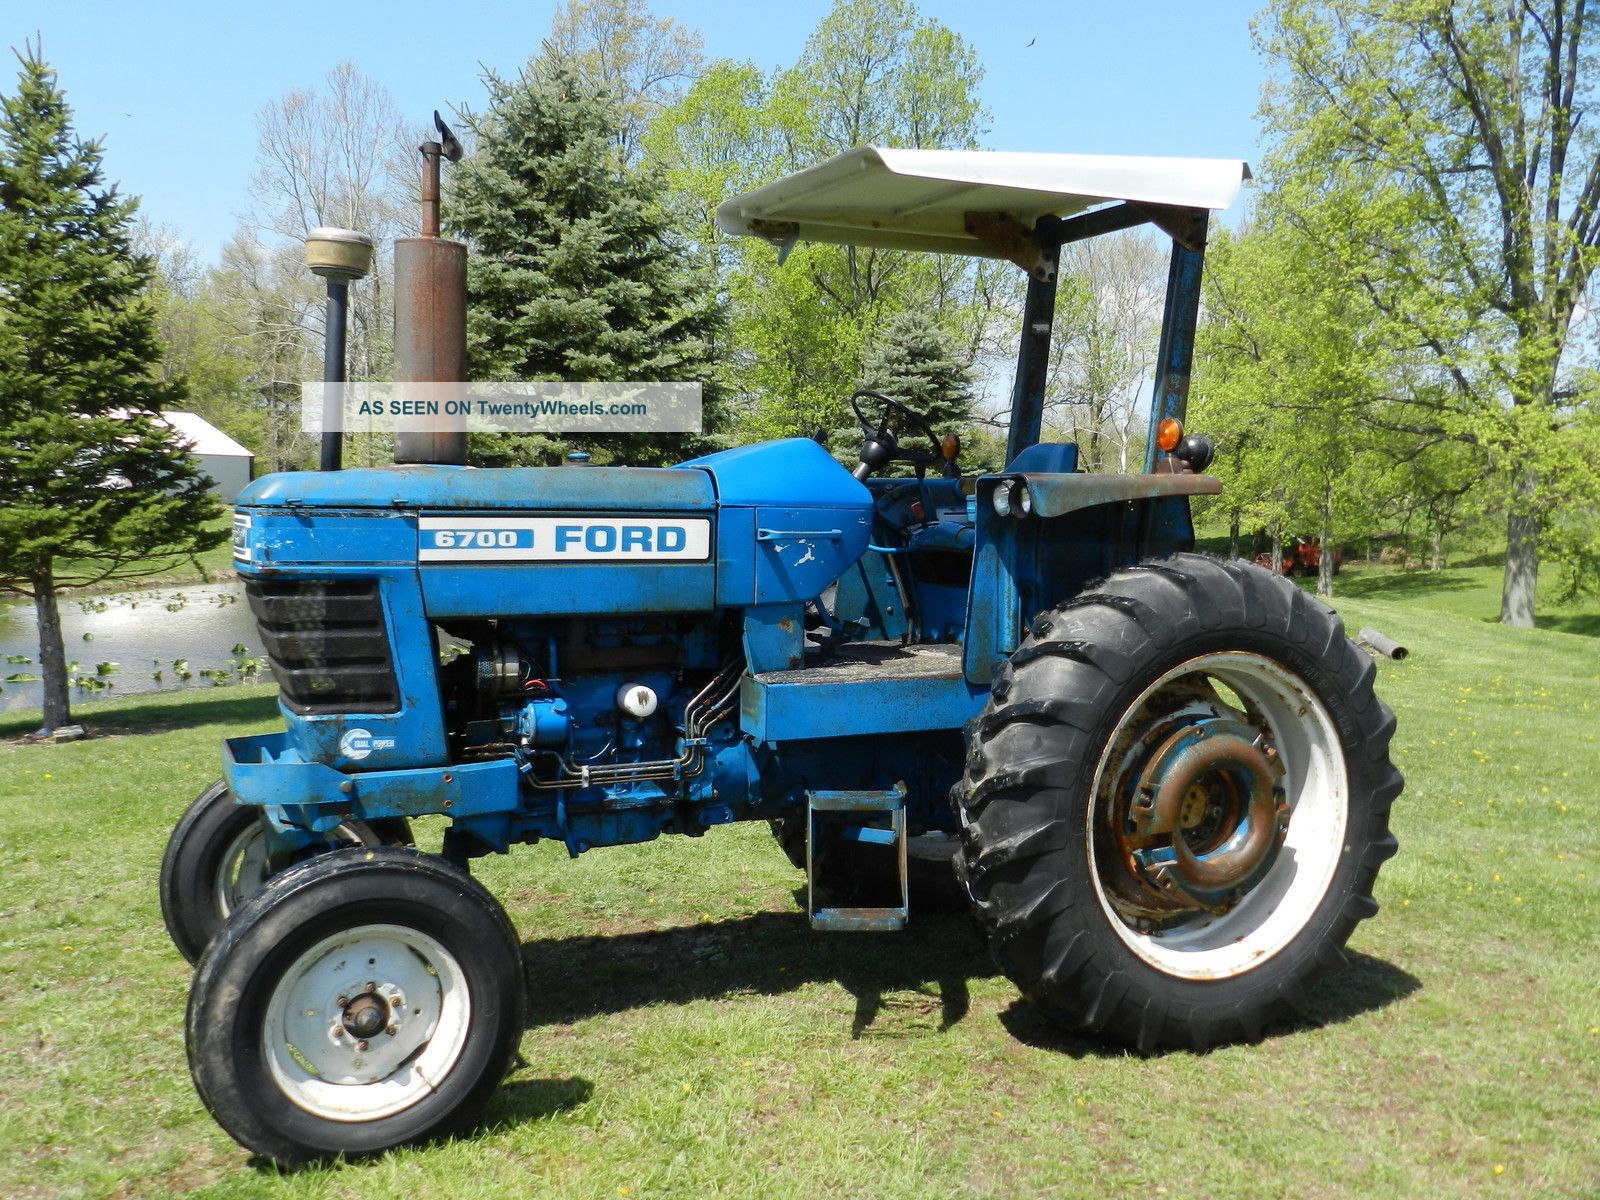 Ford 6700 Tractor - Diesel Tractors photo